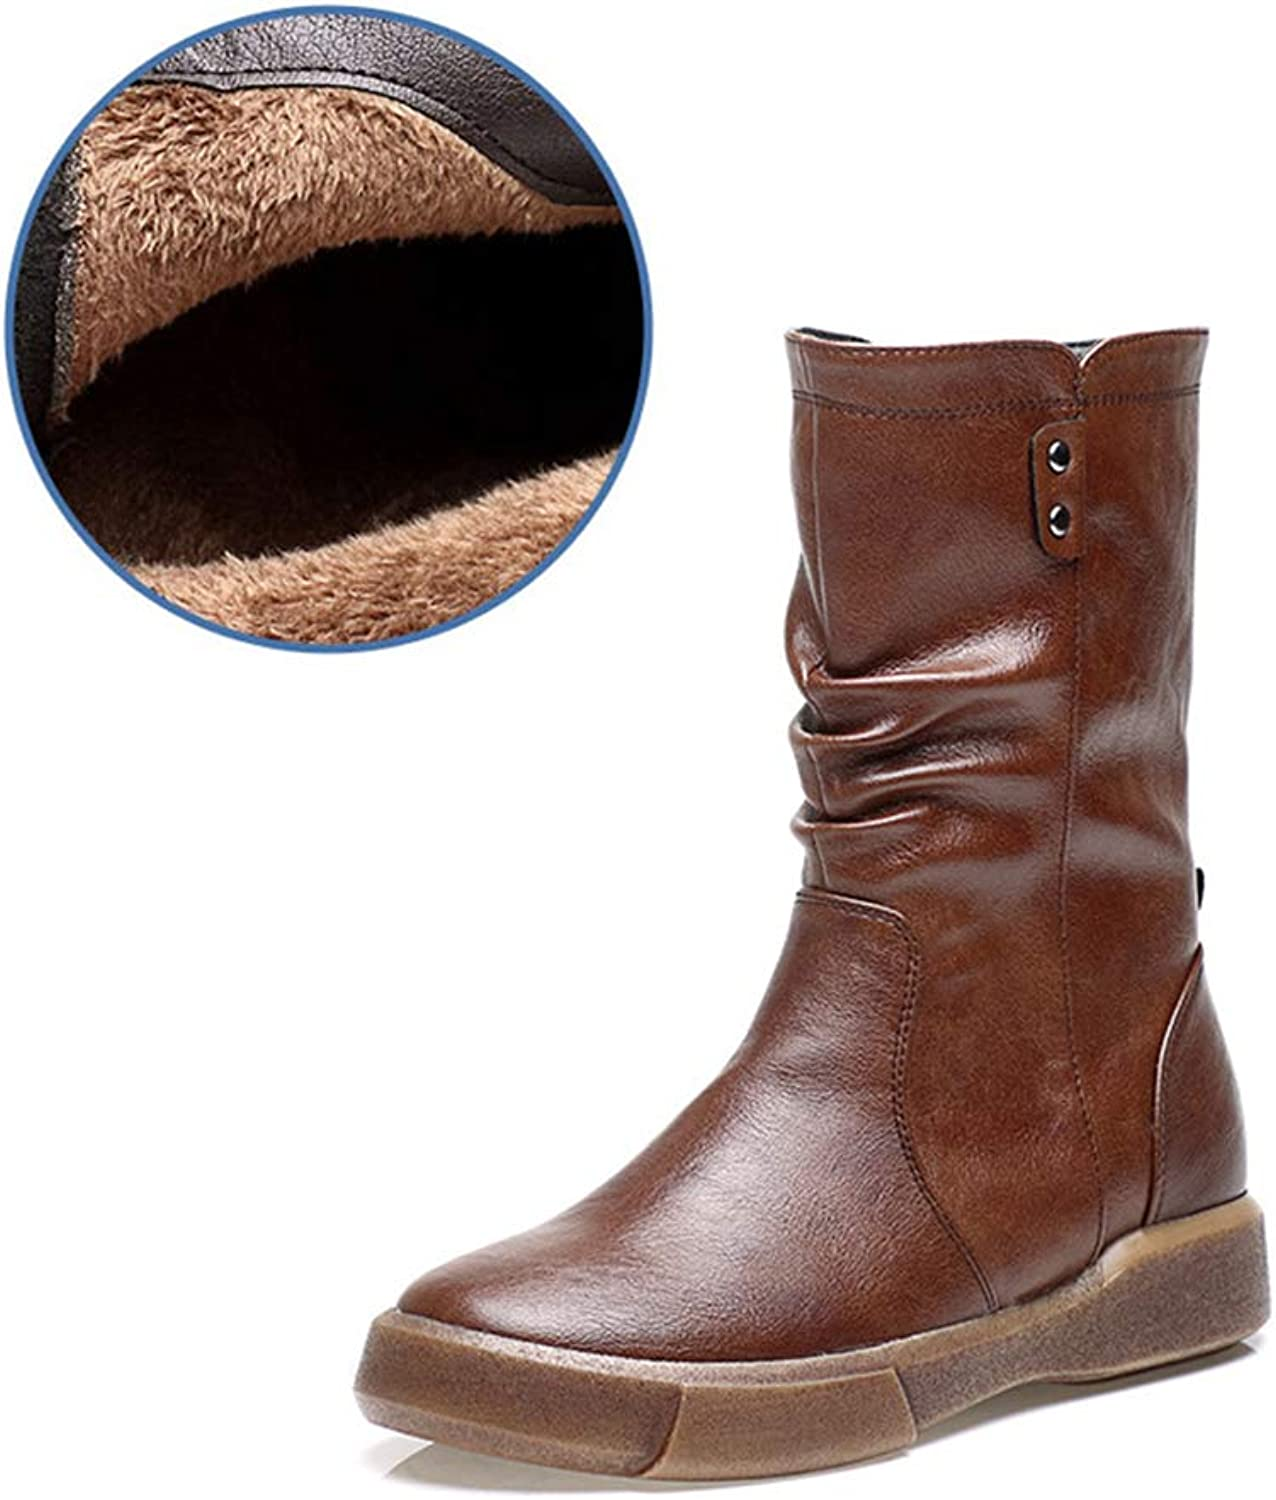 ALLAK Women Leather Boots Flat Low Short Tube Boots Casual shoes Martin Boots